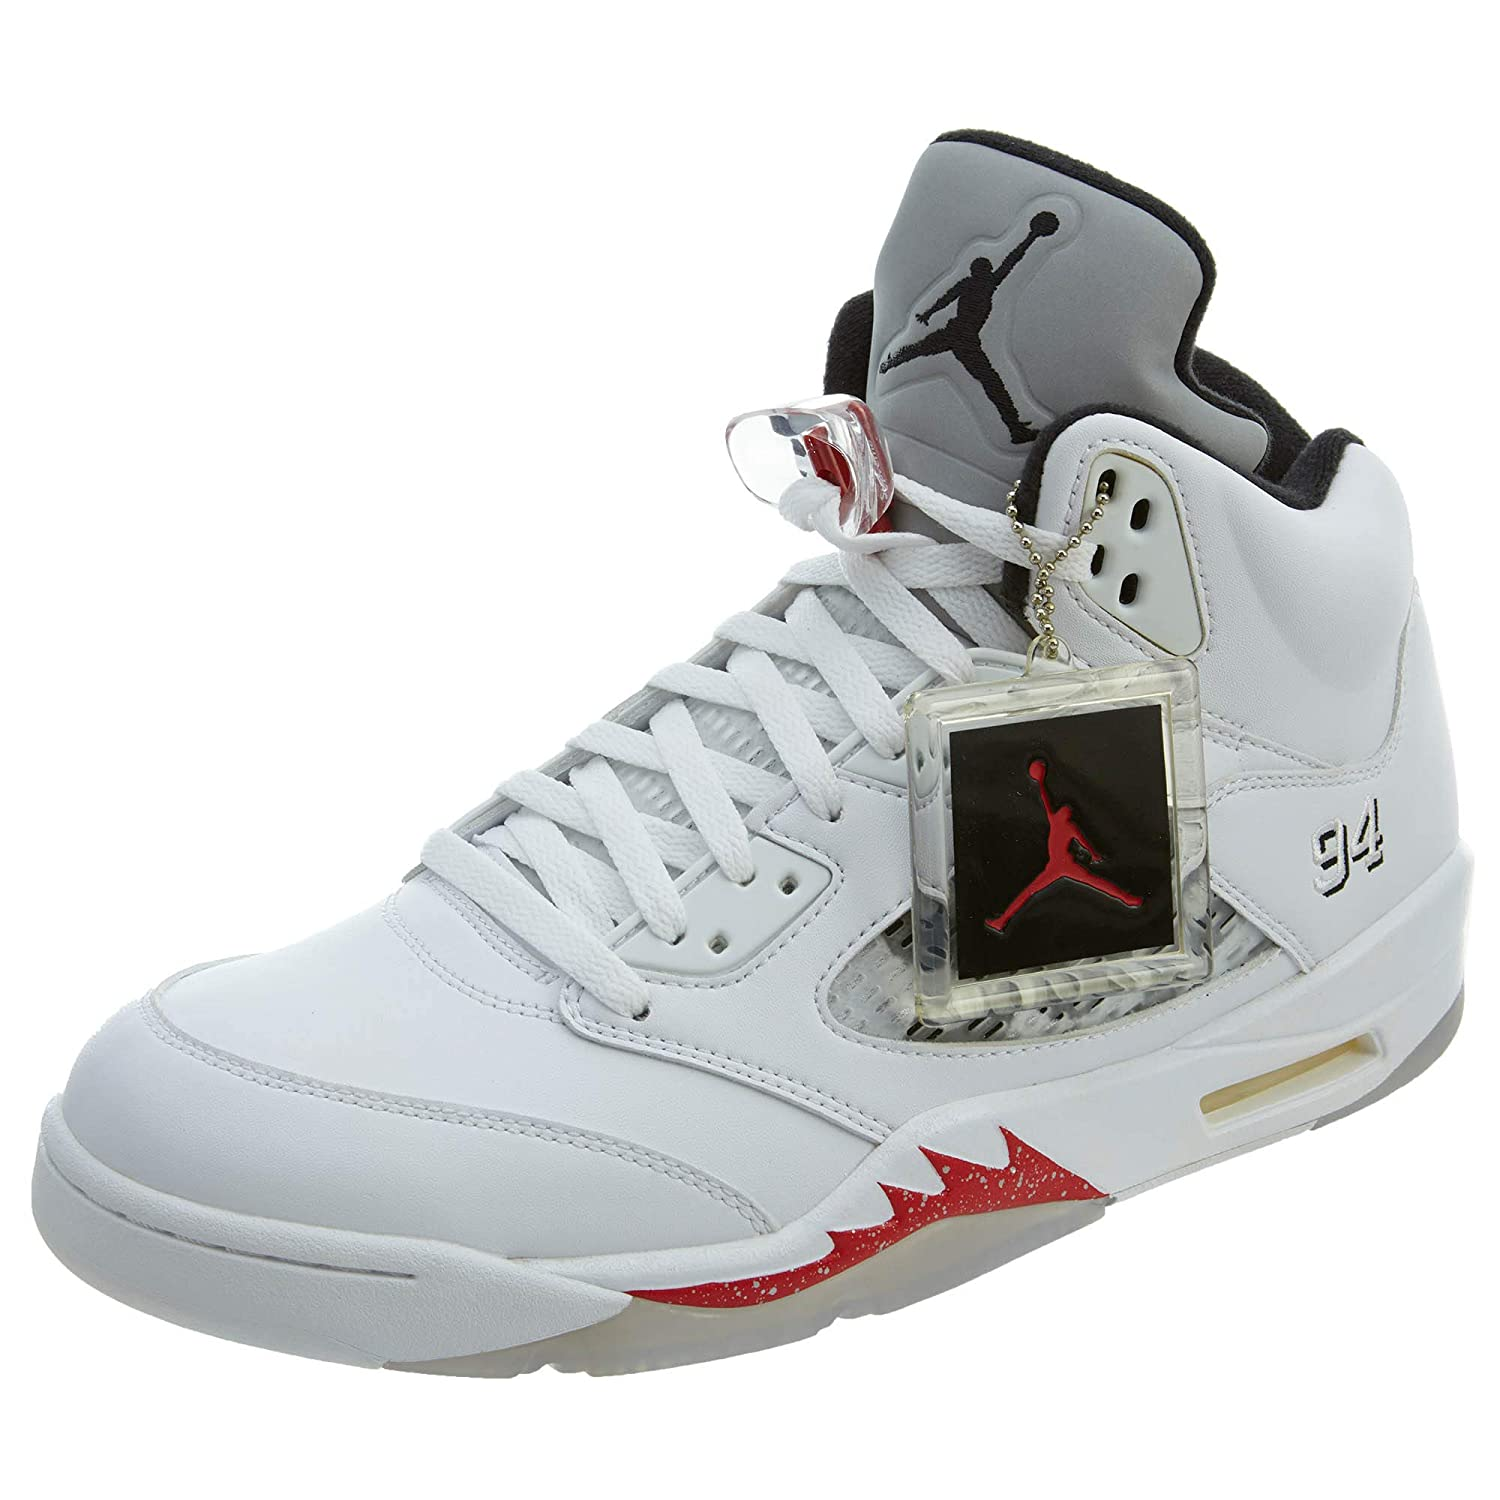 huge selection of 8d0c7 f641e Amazon.com   Jordan Air 5 Retro Supreme Inchsupreme Mens   Basketball